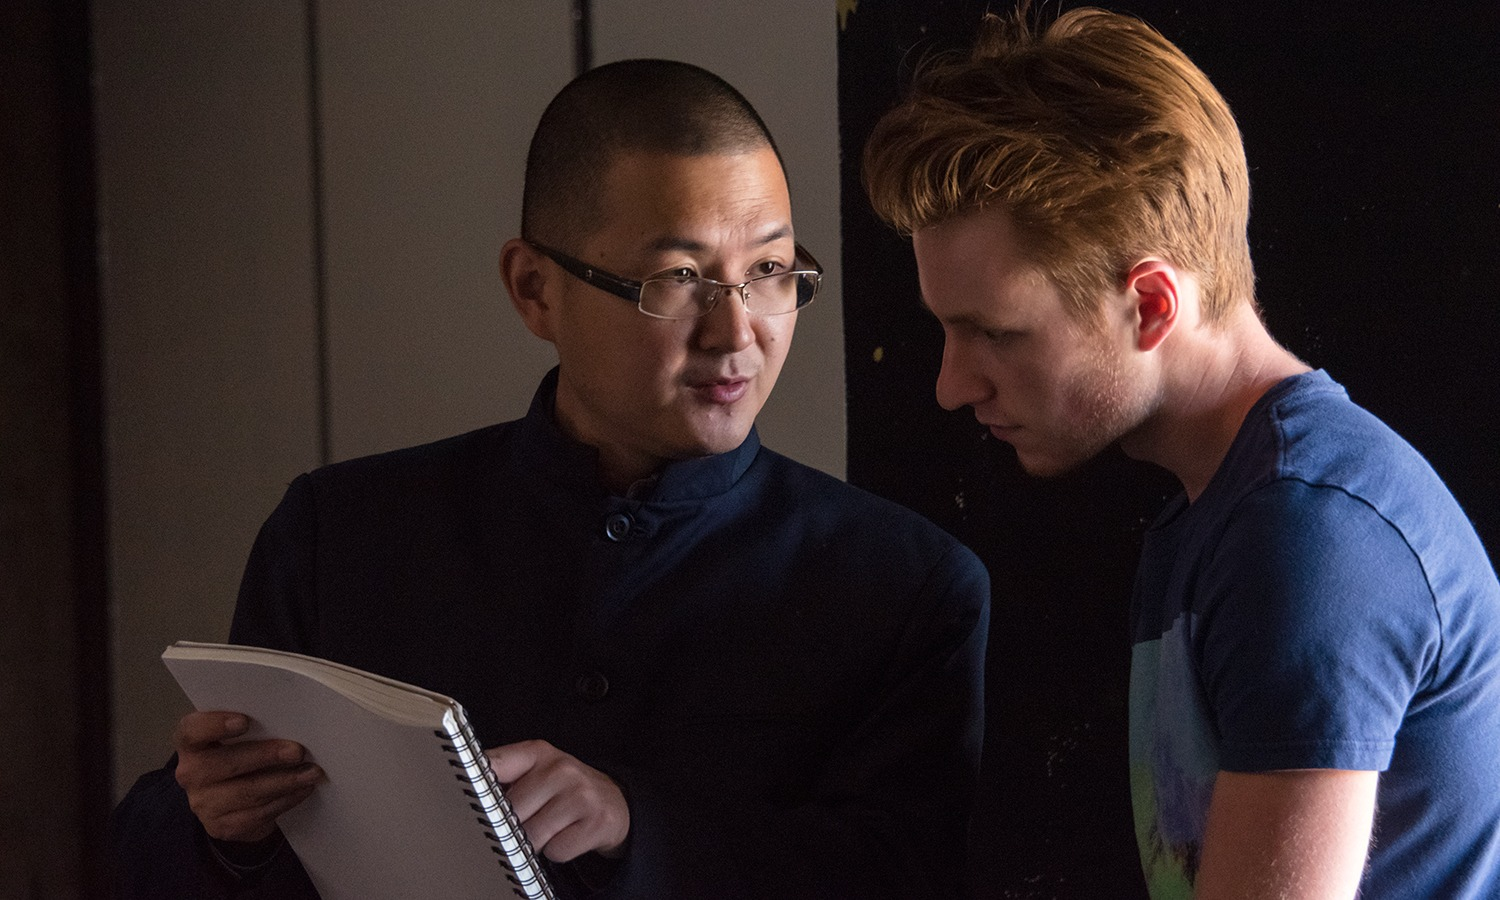 Professor Xi Zhang works with a student